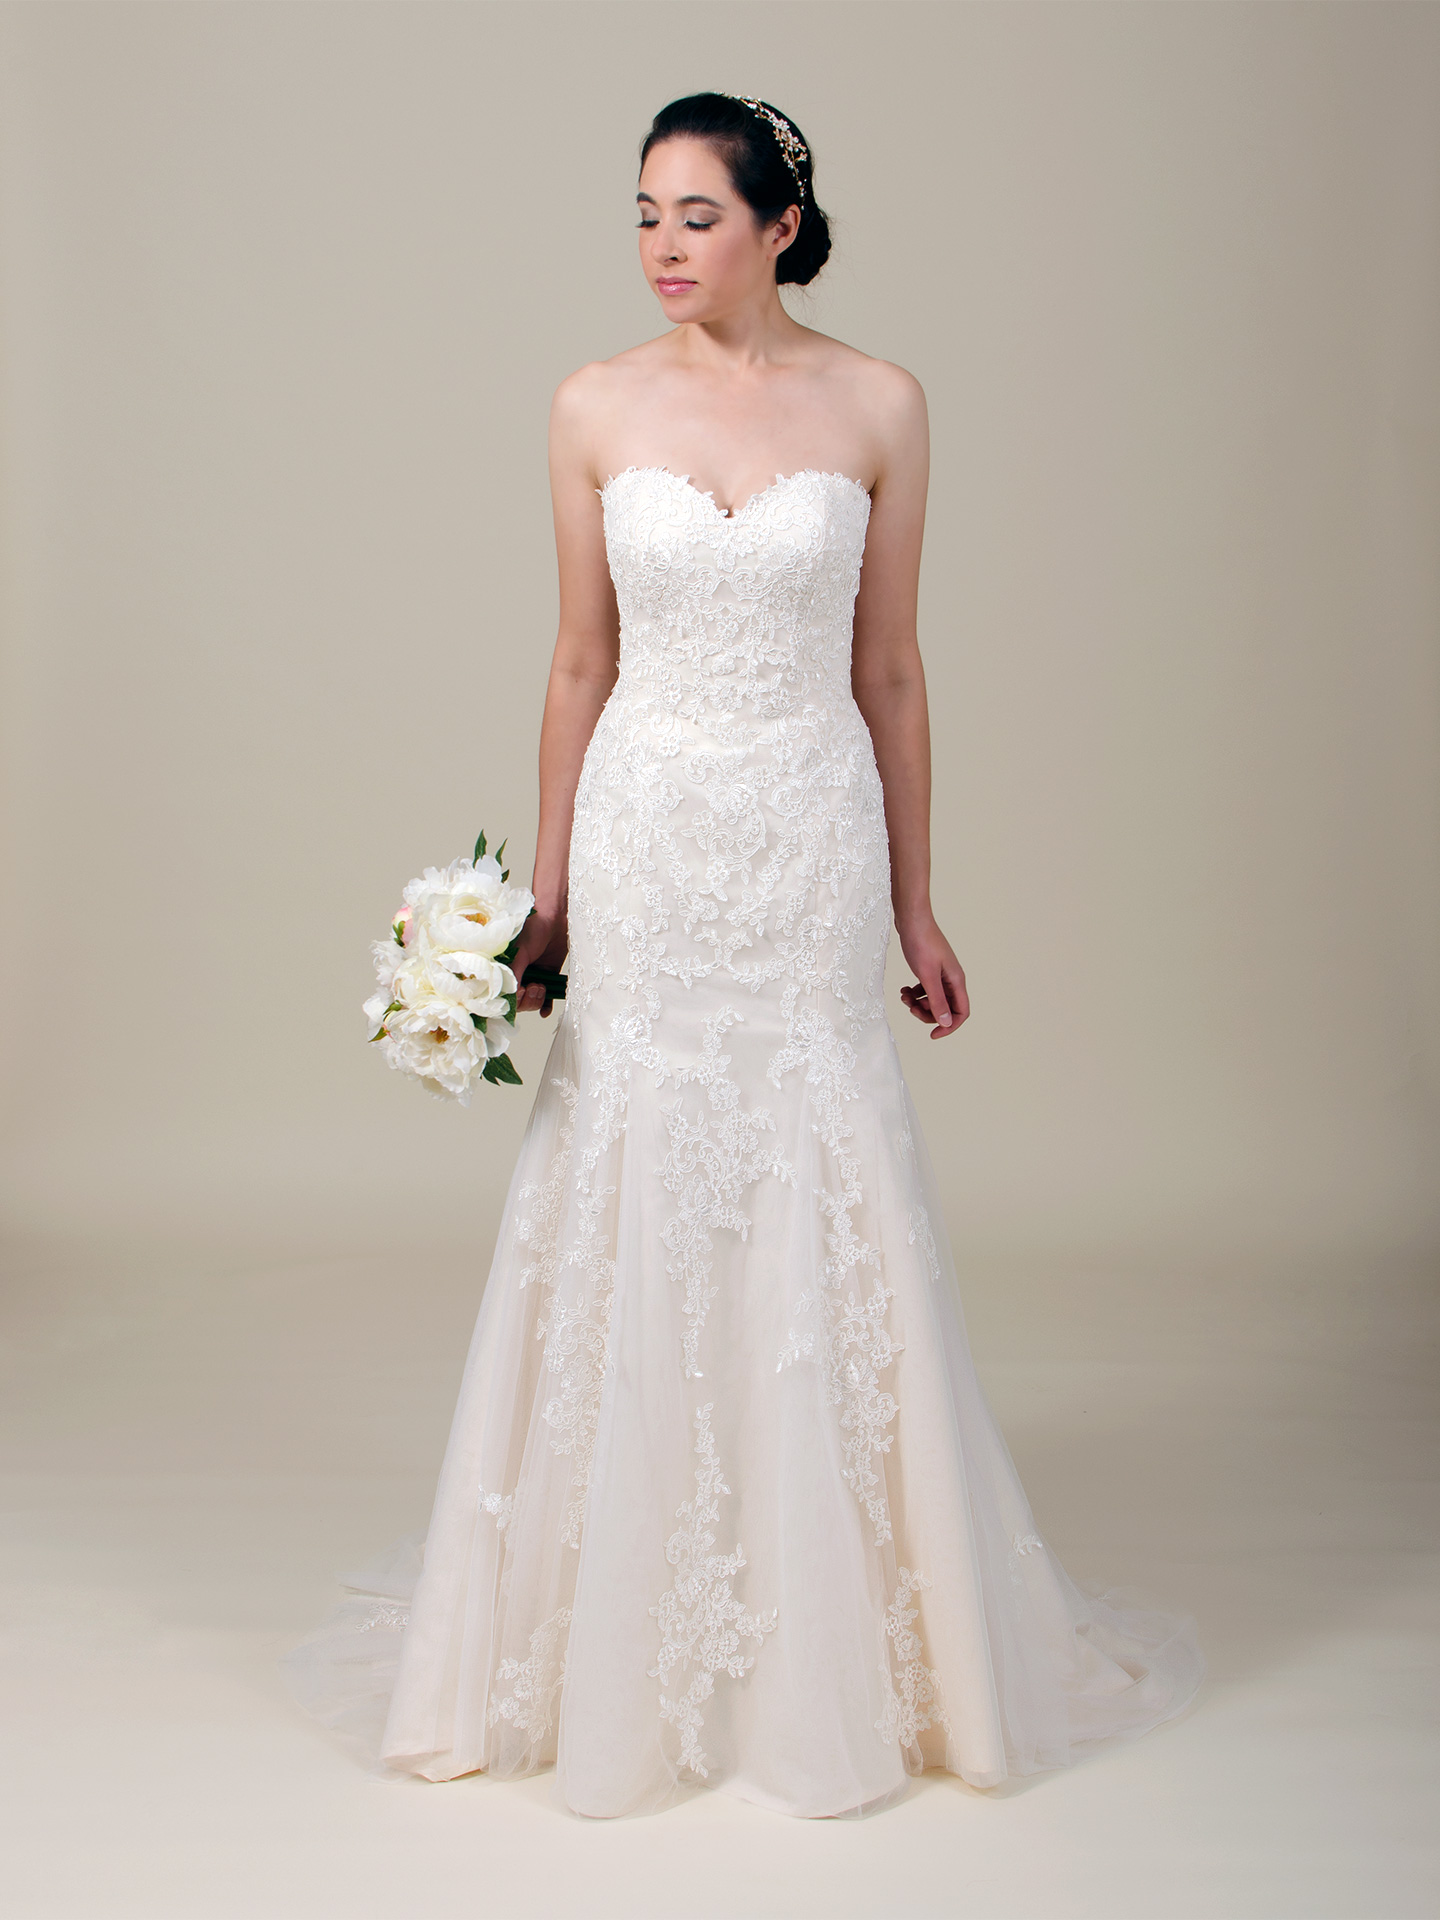 Strapless lace wedding dress 4063